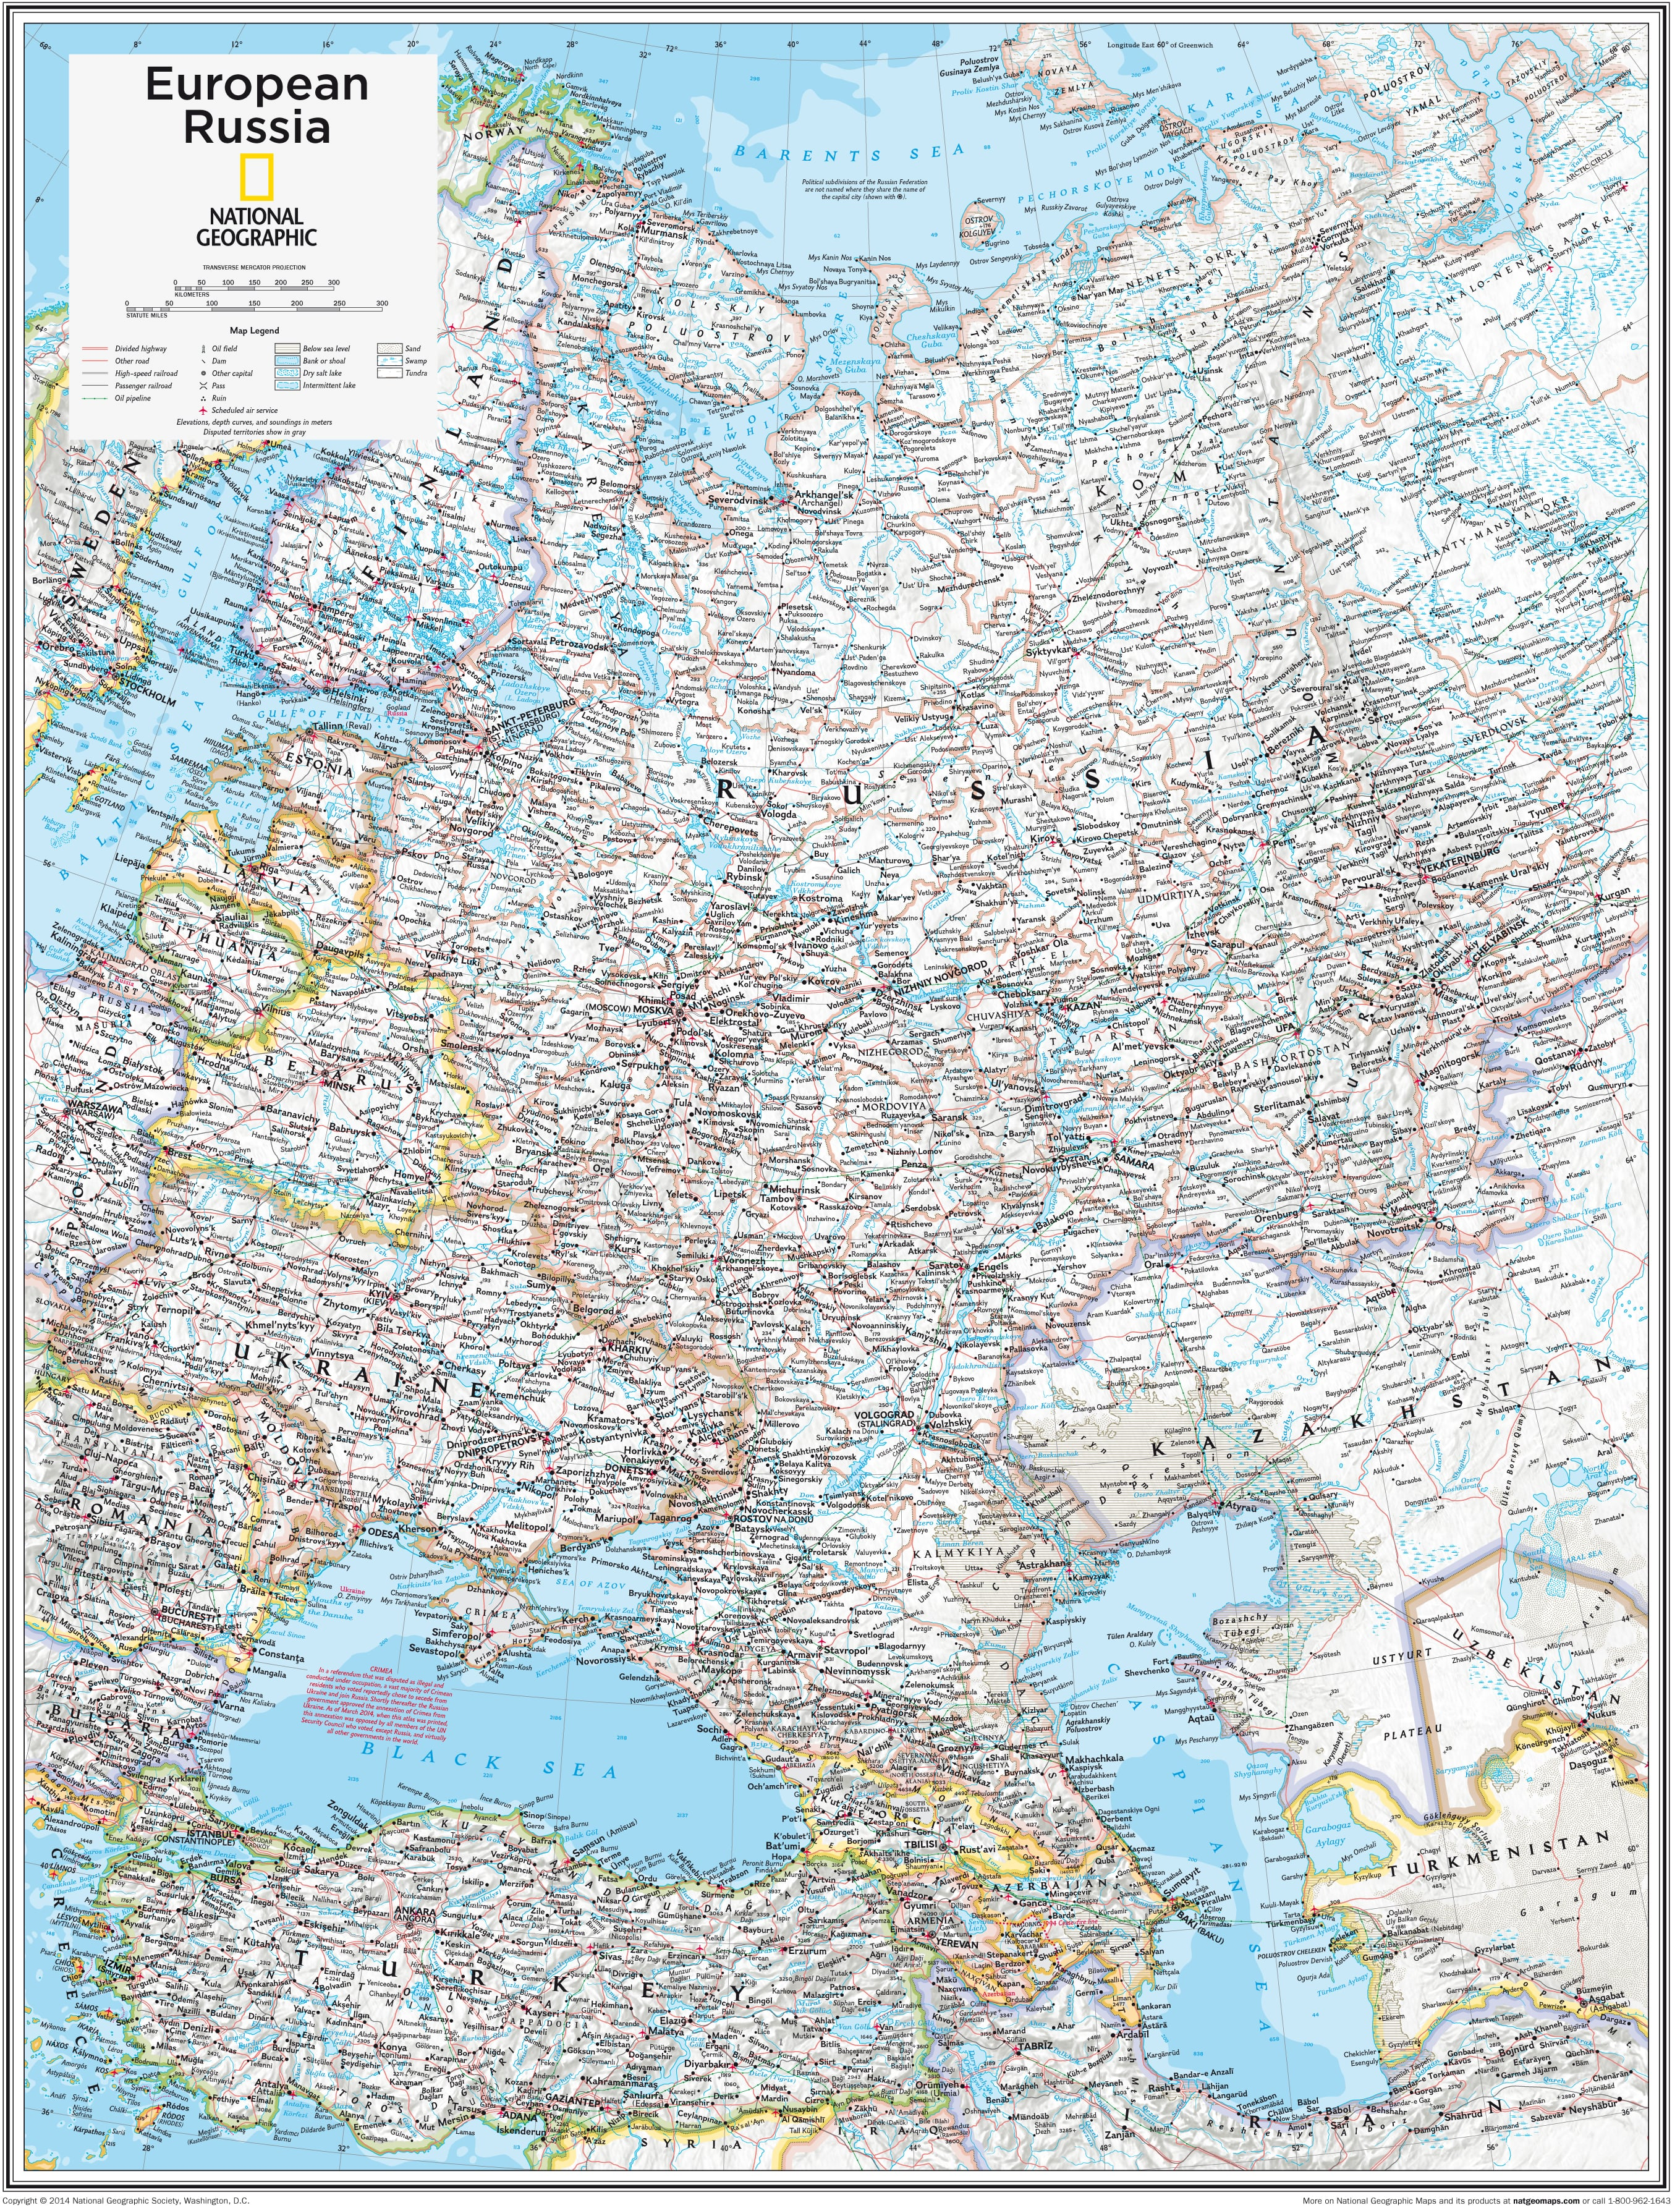 Ngs European Russia Wall Map